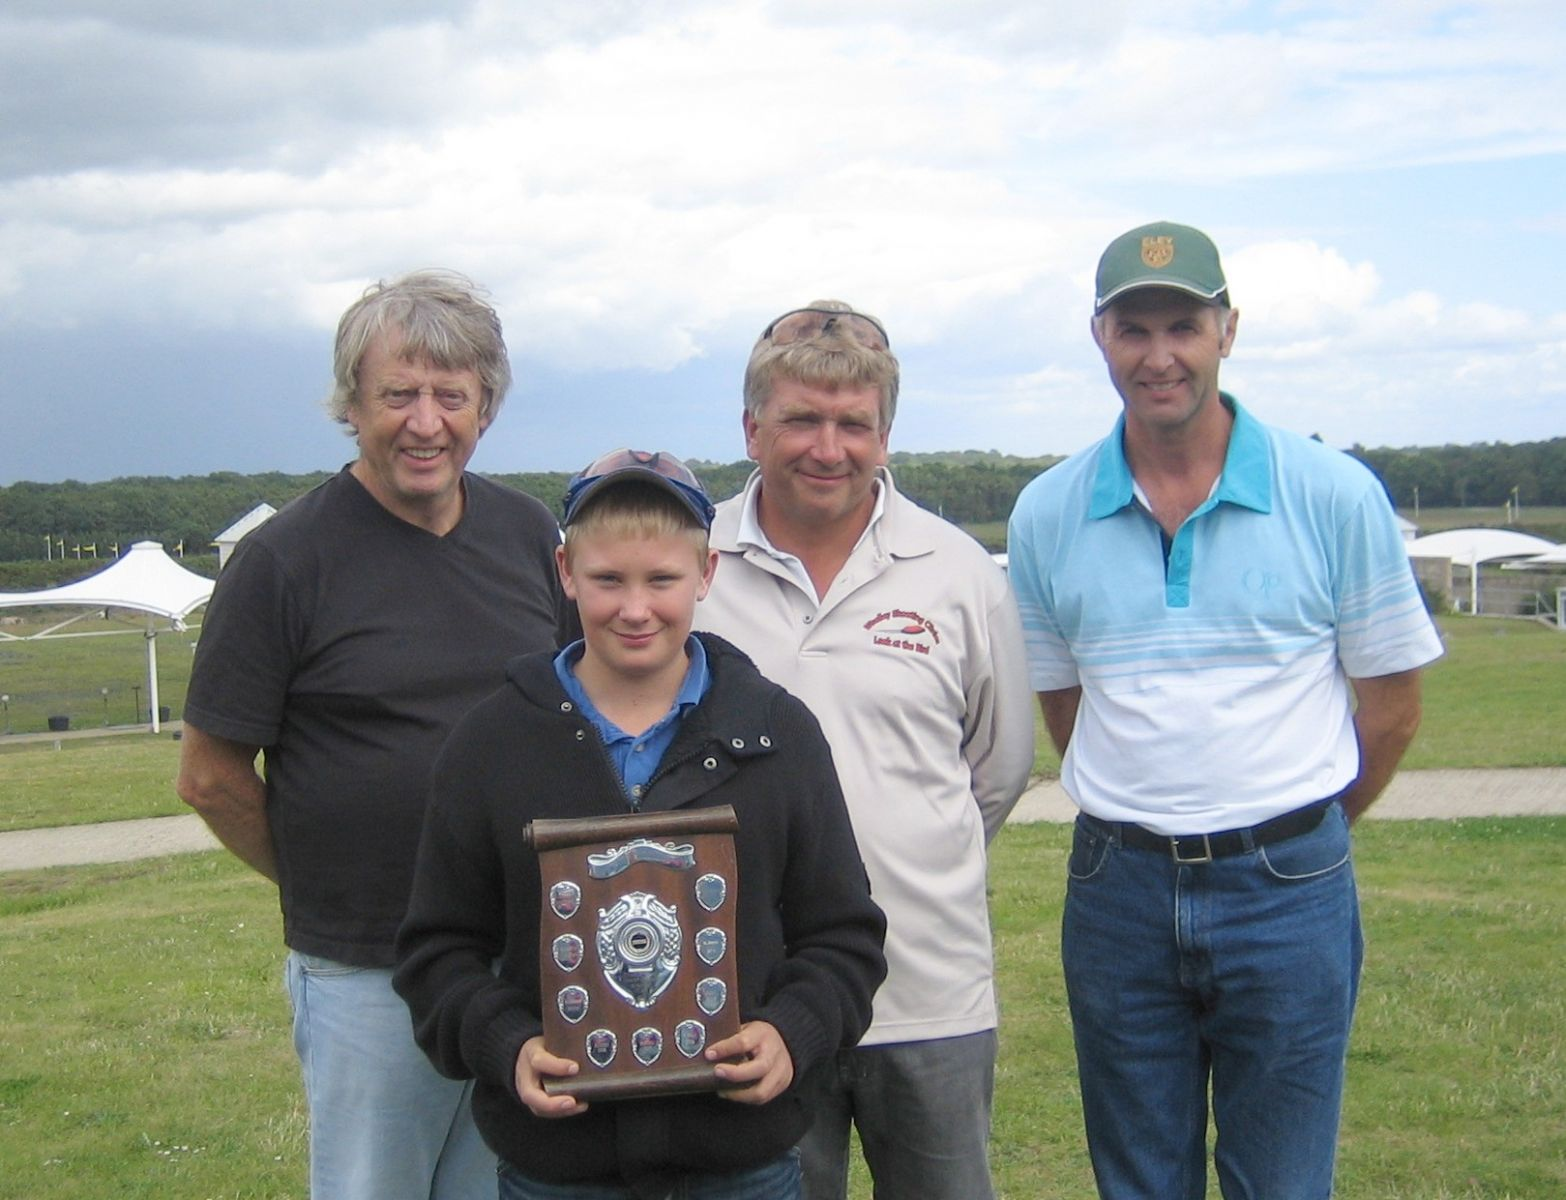 - Intercounties Double Trap 2011 Winning Team Kent, Dave Amos, Nathan Hales, Colin Hales and Kevin Howland